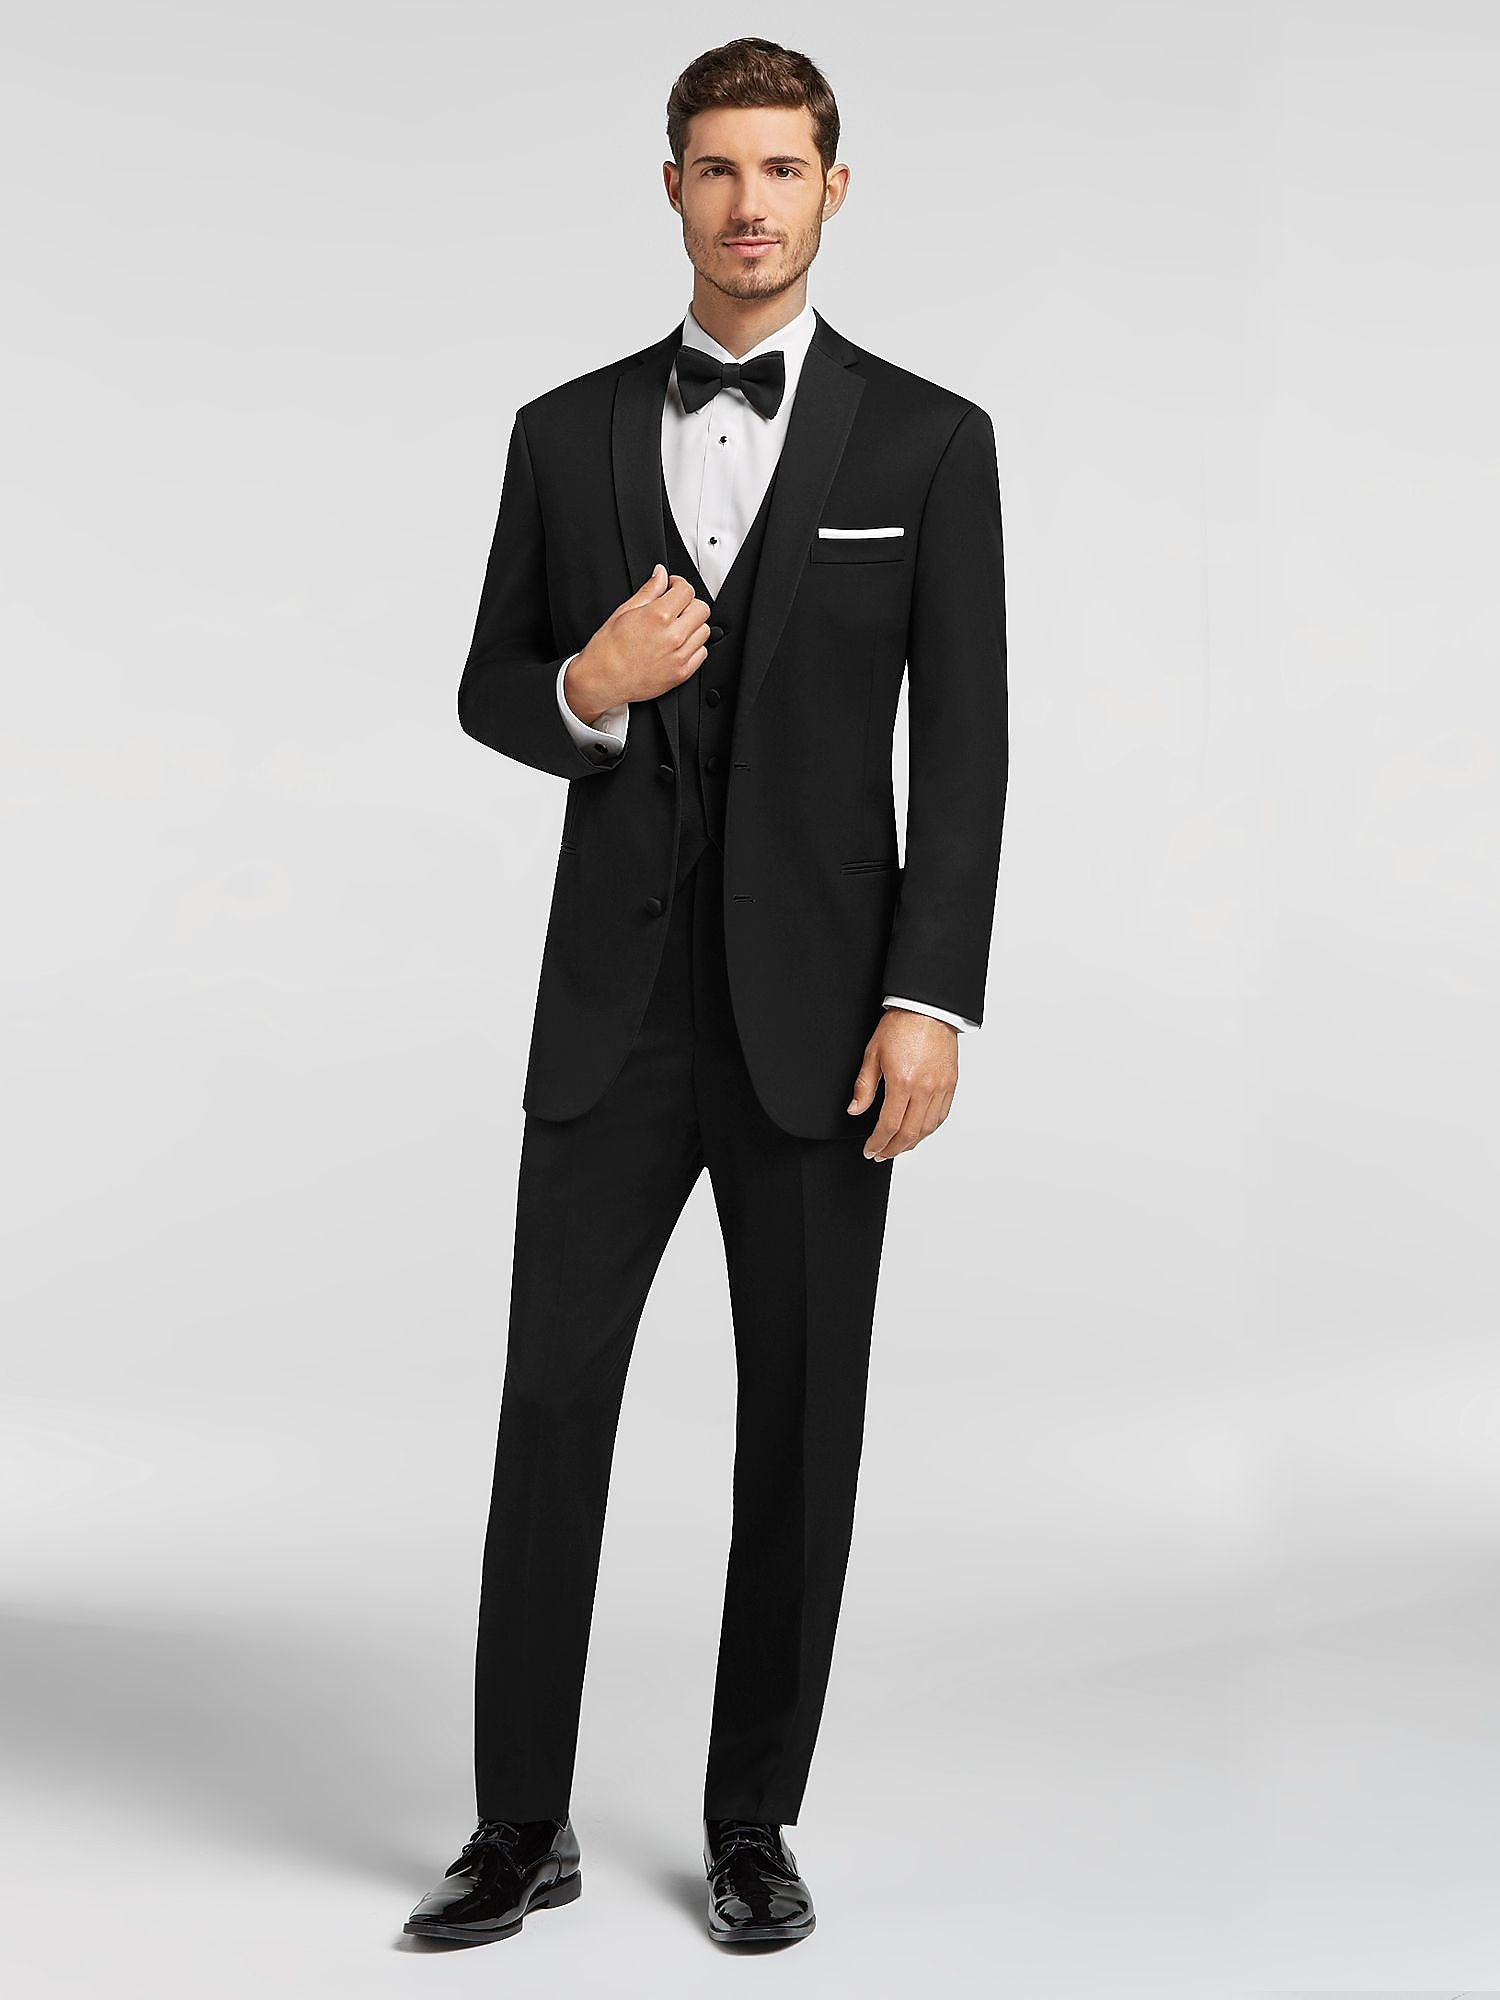 Create My Look - Many Colors & Styles | Men\'s Wearhouse